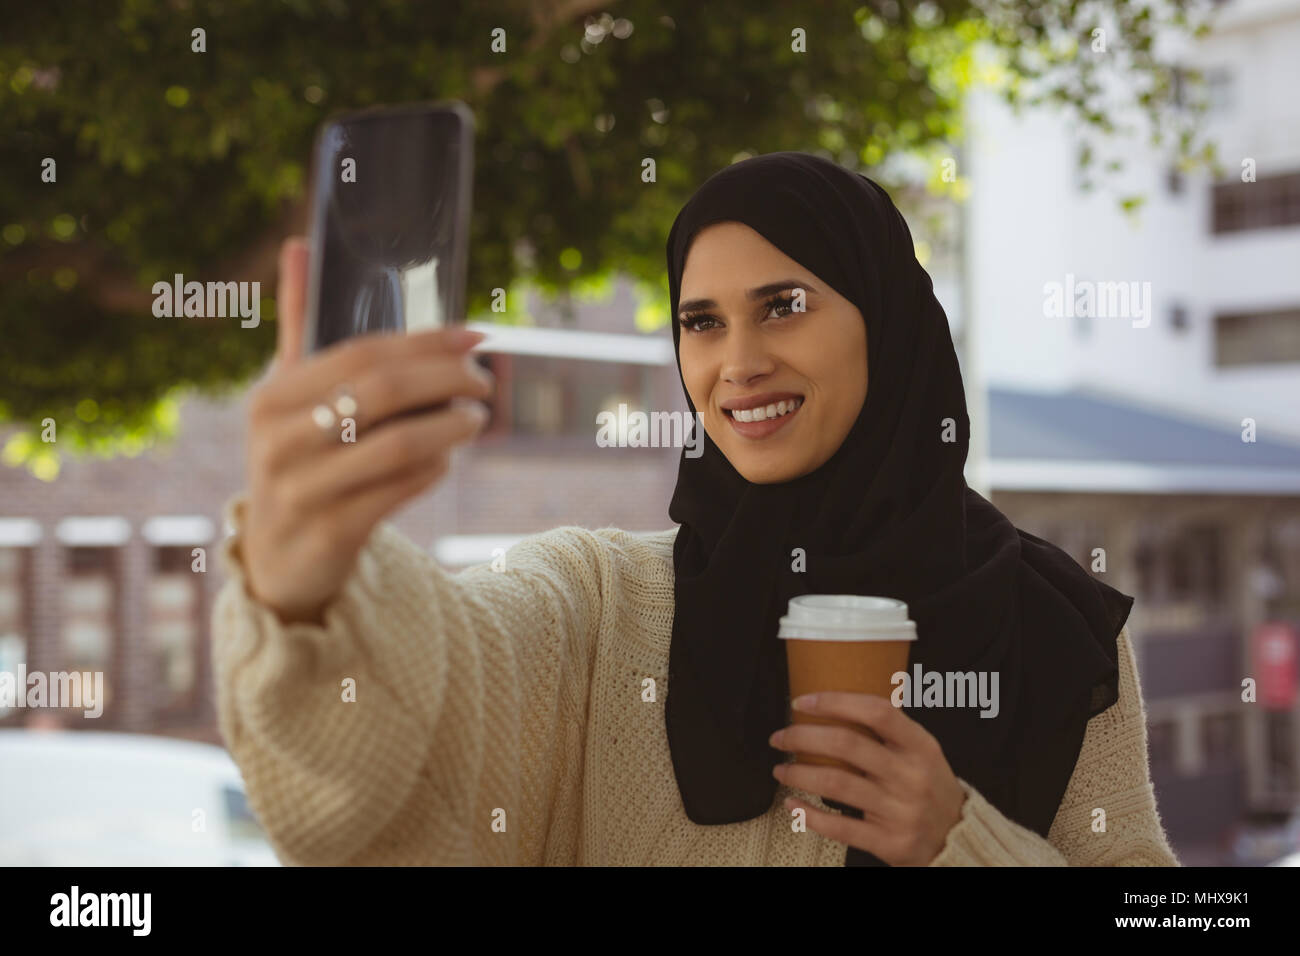 Hijab woman taking selfie with mobile phone - Stock Image